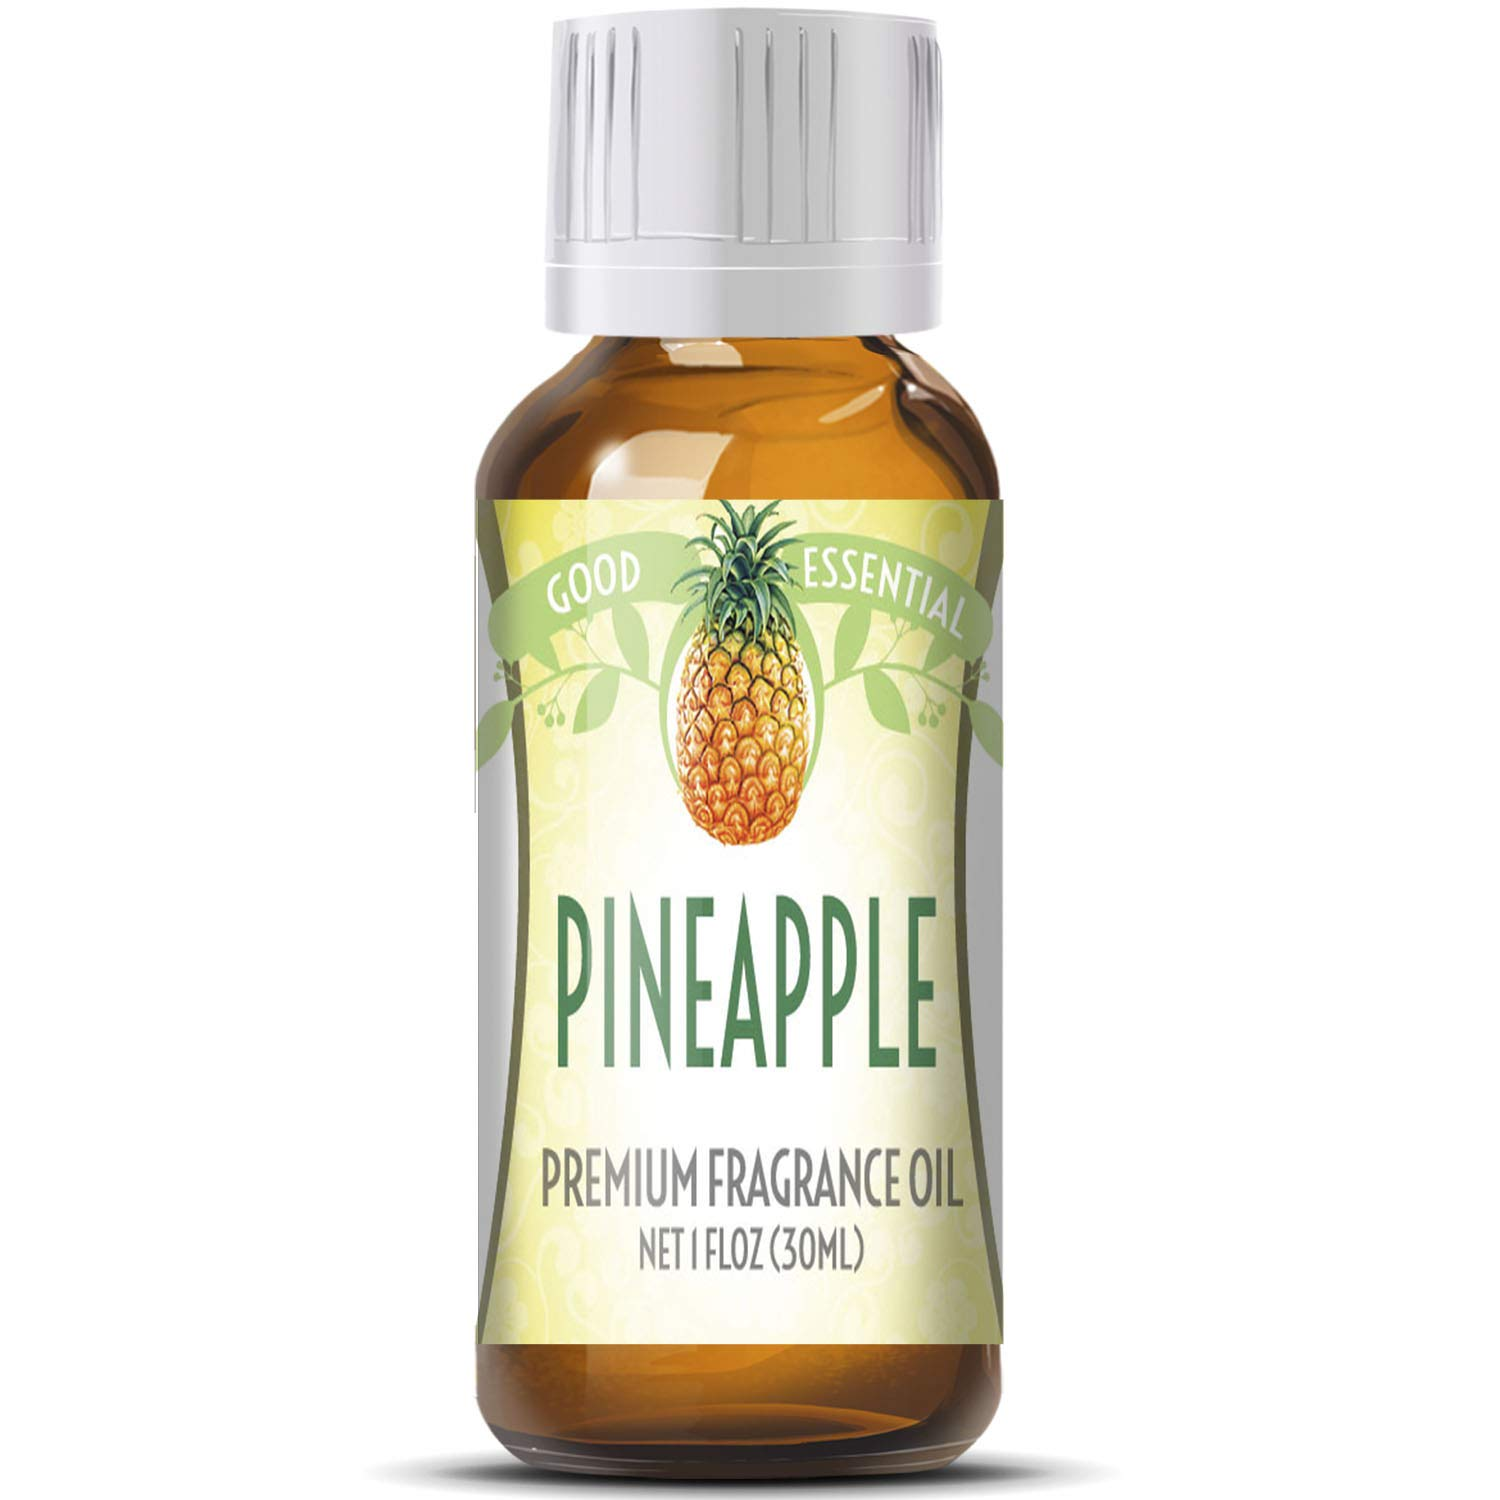 Pineapple Scented Oil by Good Essential (Huge 1oz Bottle - Premium Grade Fragrance Oil) - Perfect for Aromatherapy, Soaps, Candles, Slime, Lotions, and More!